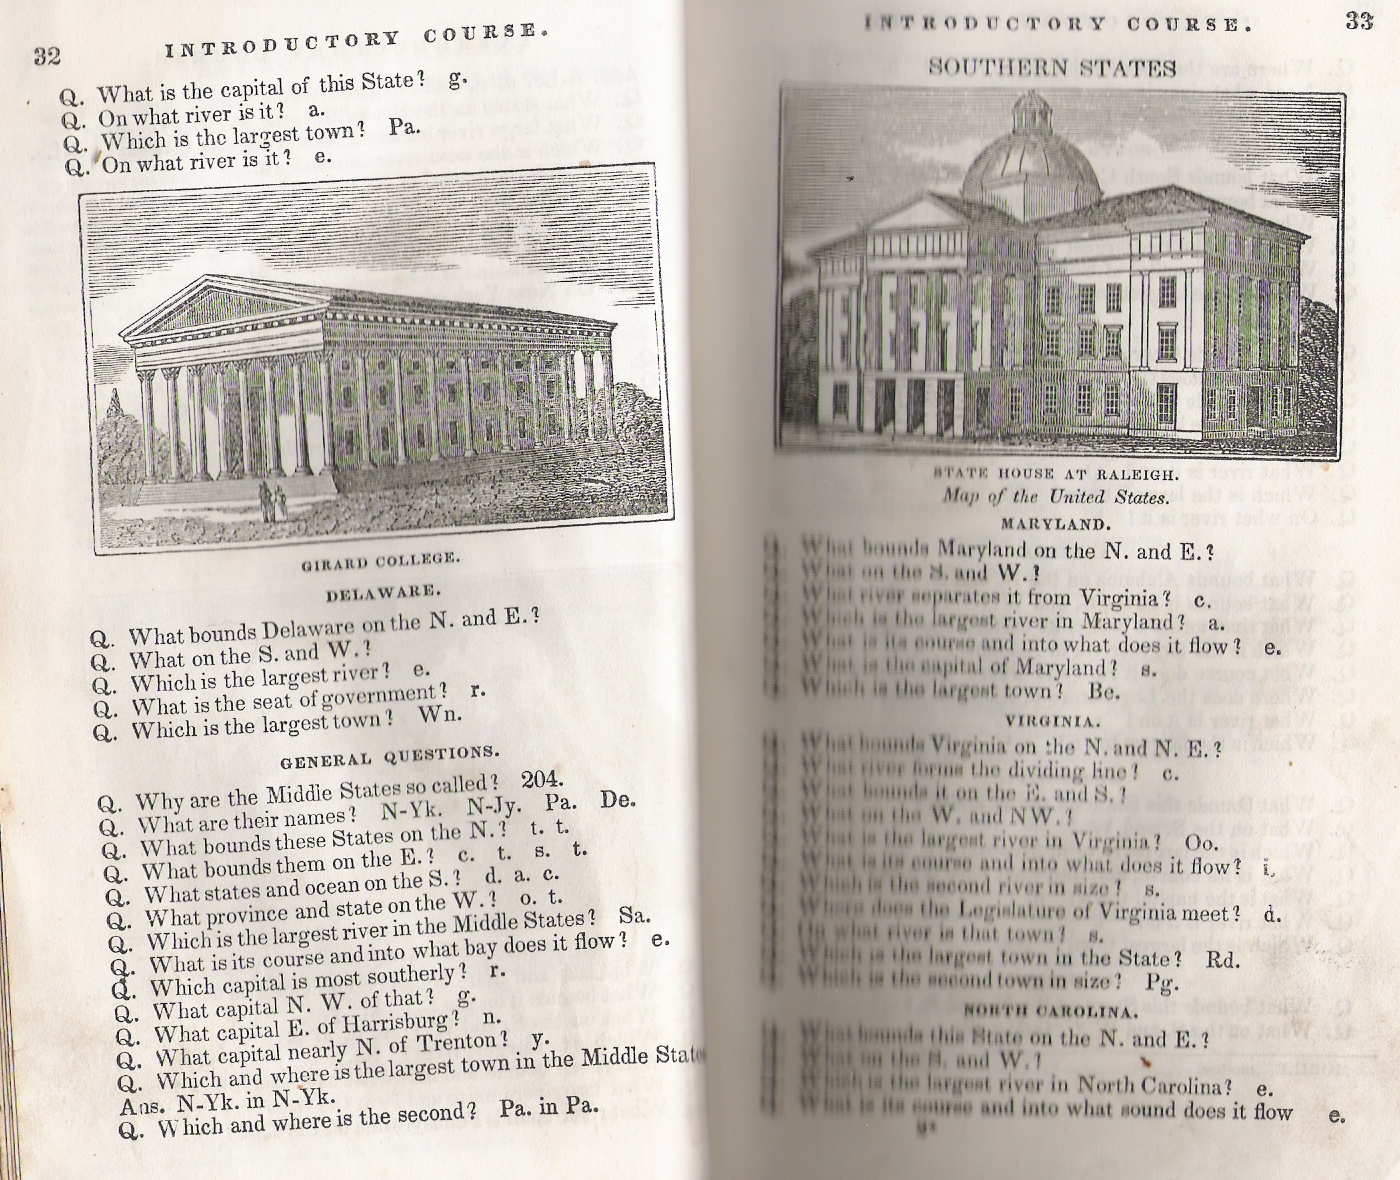 a fuller description of the state is further back on pages127 128 129 130 an advertisement indicates the first edition appeared in 1835 with a